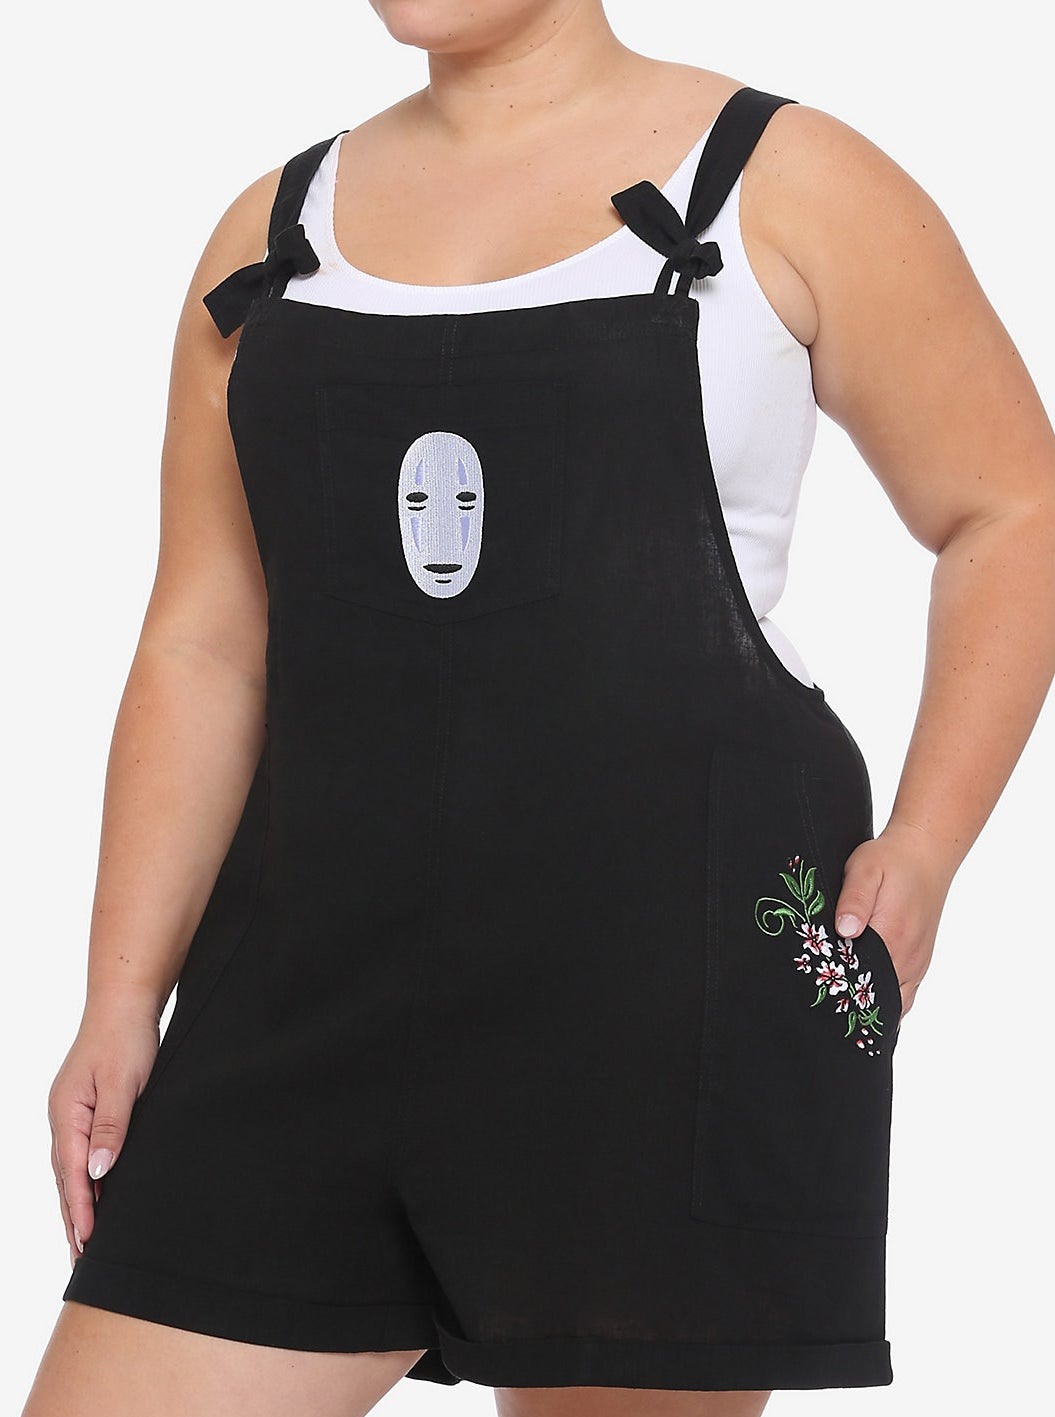 model wearing the black shortalls with embroidered No Face on the chest and floral embroidery on the pockets